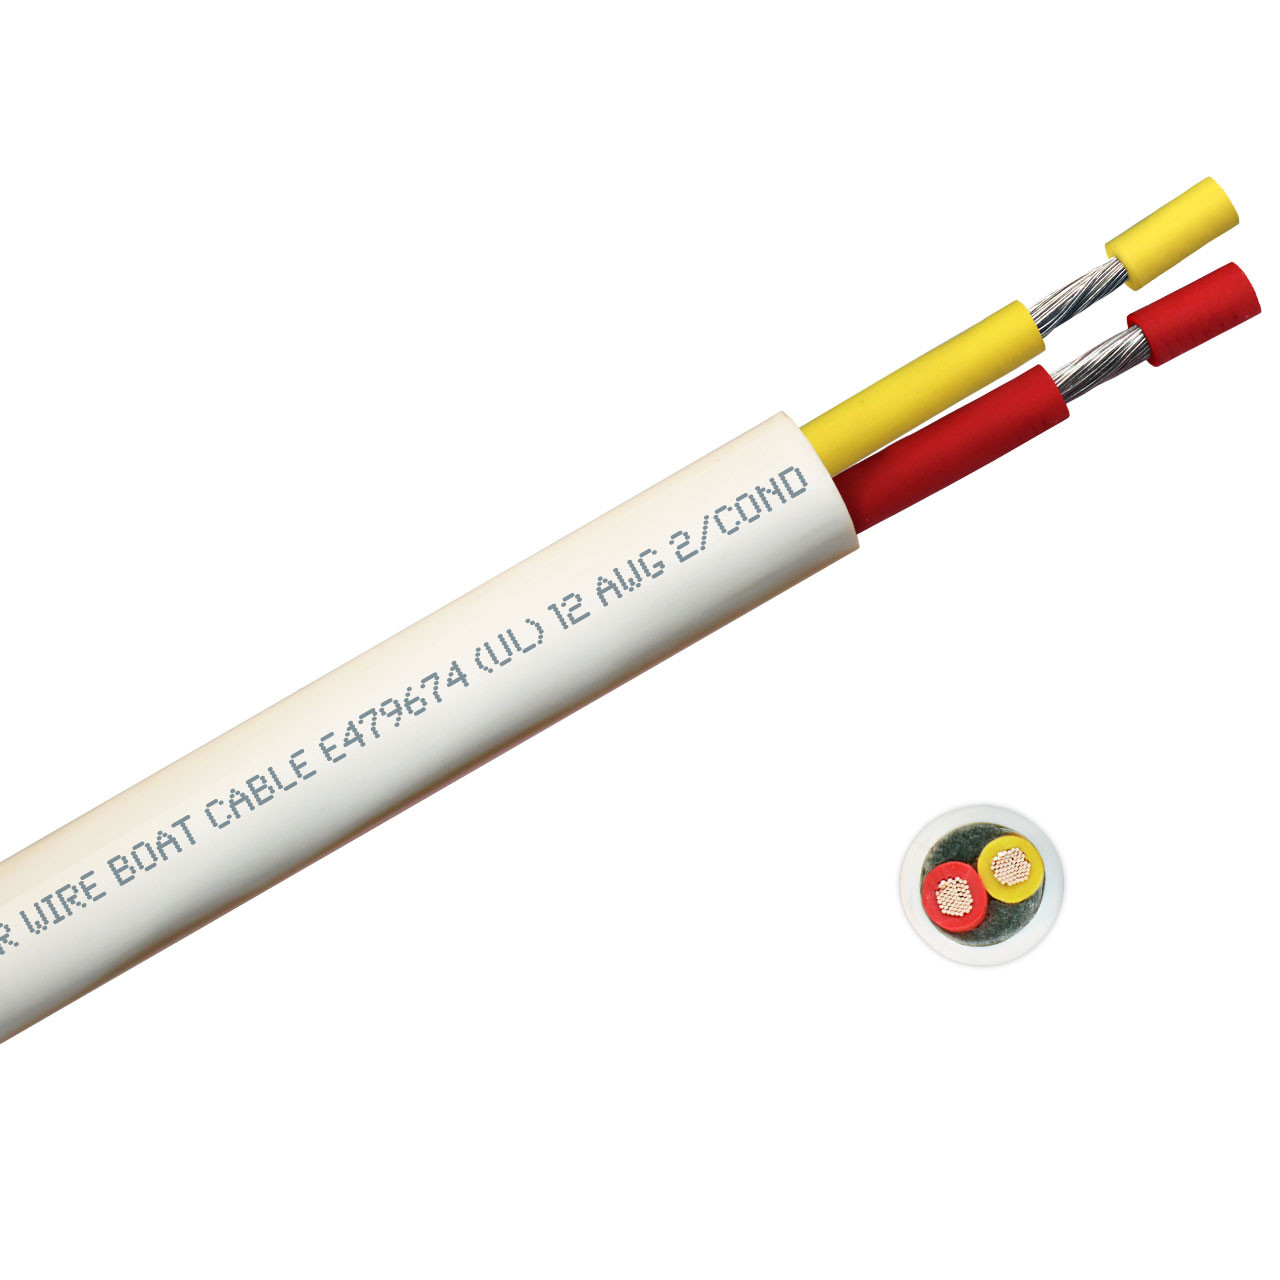 12 AWG round yellow and red safety dc duplex marine grade tinned copper bc5w2 boat cable features ultra flexible Class K fine copper stranding for flexibility and conductivity, exceeds ABYC standards, UL Listed, CSA Certified